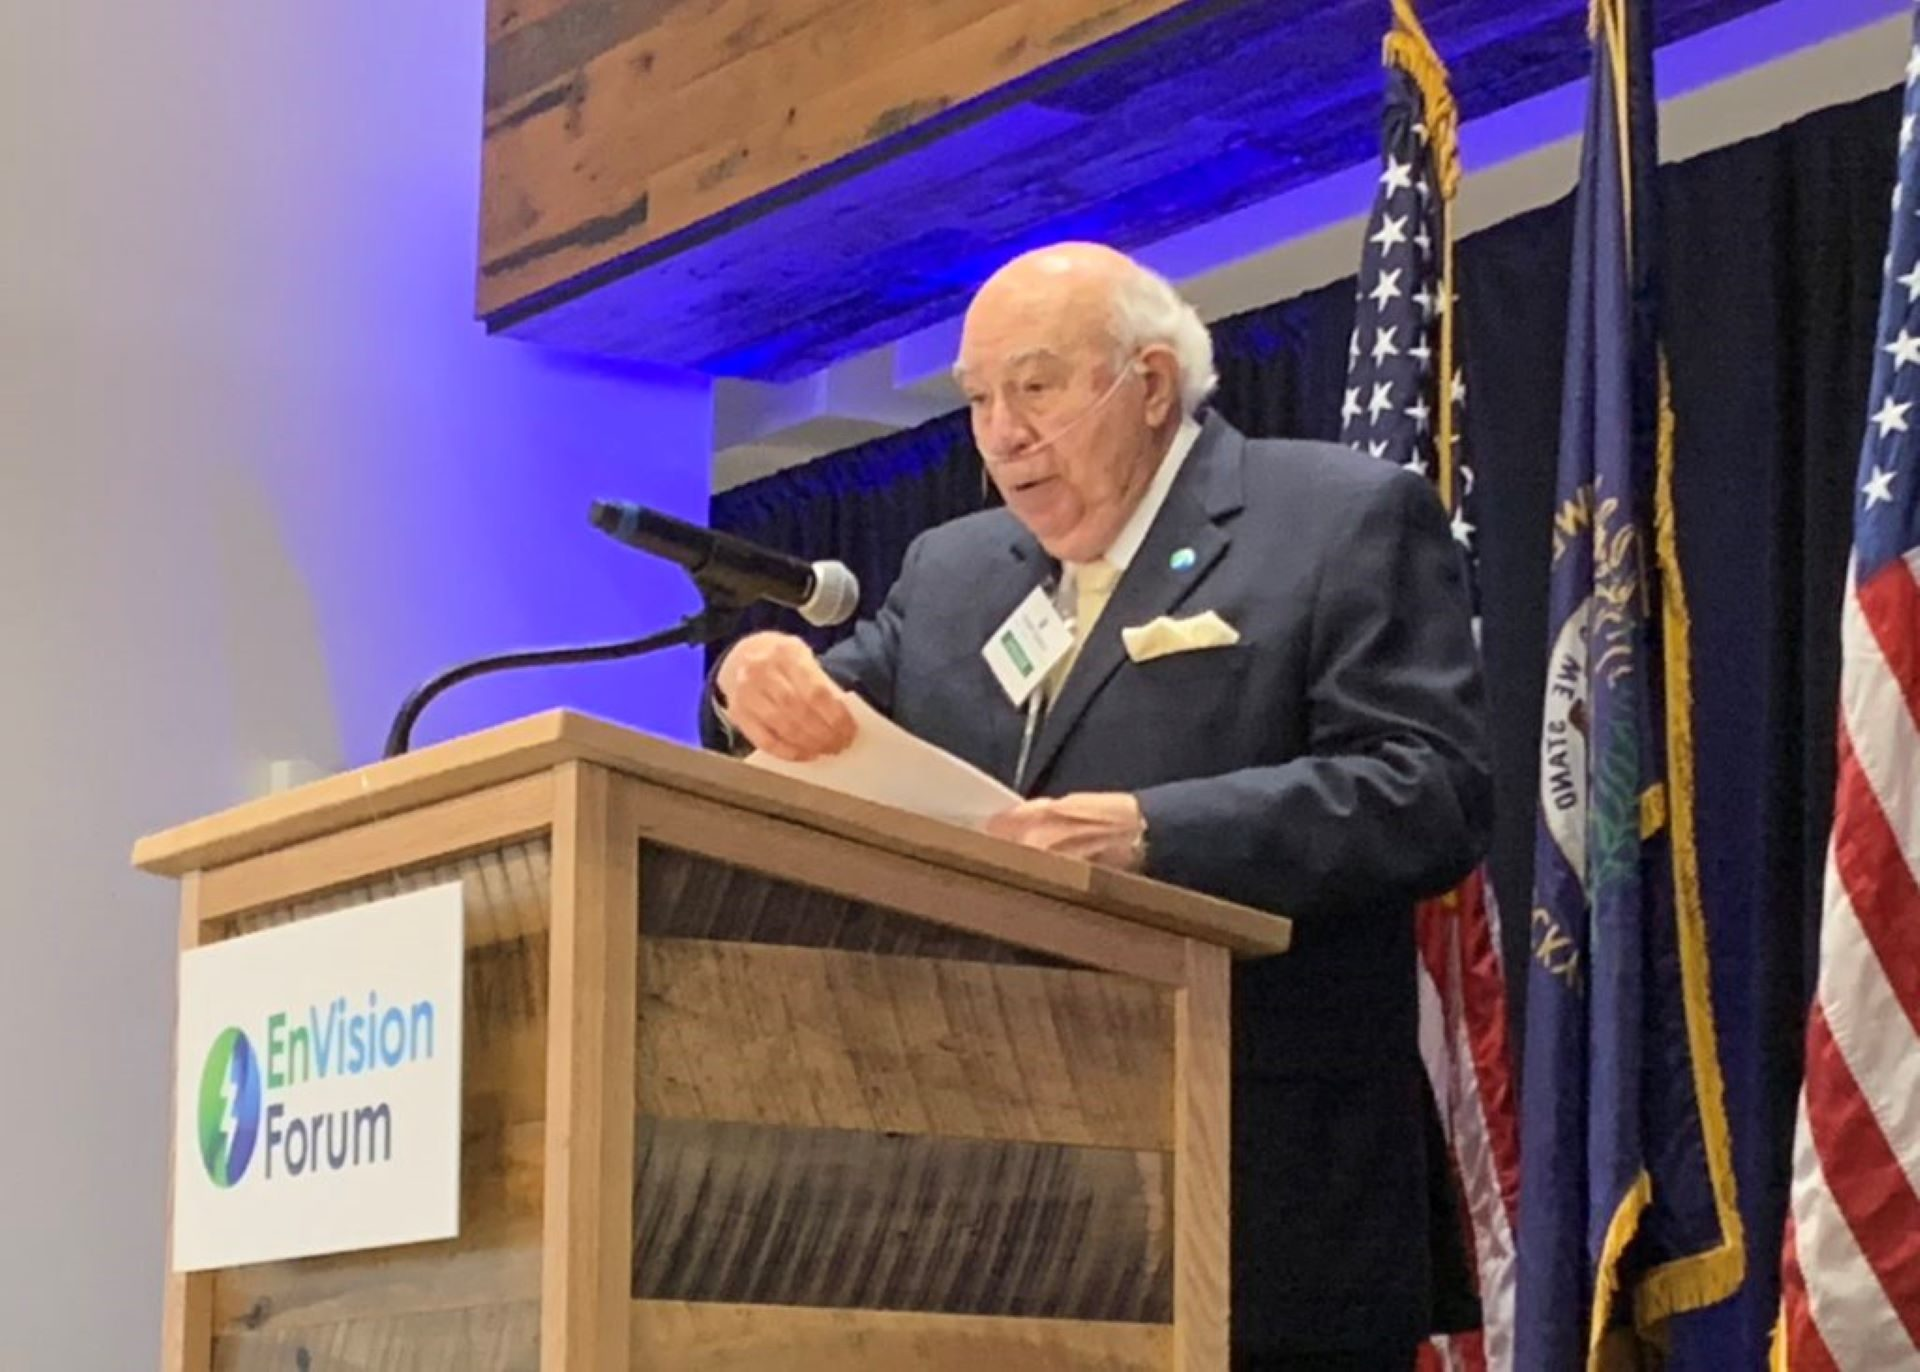 Bob Murray speaking at an event in October, 2019.